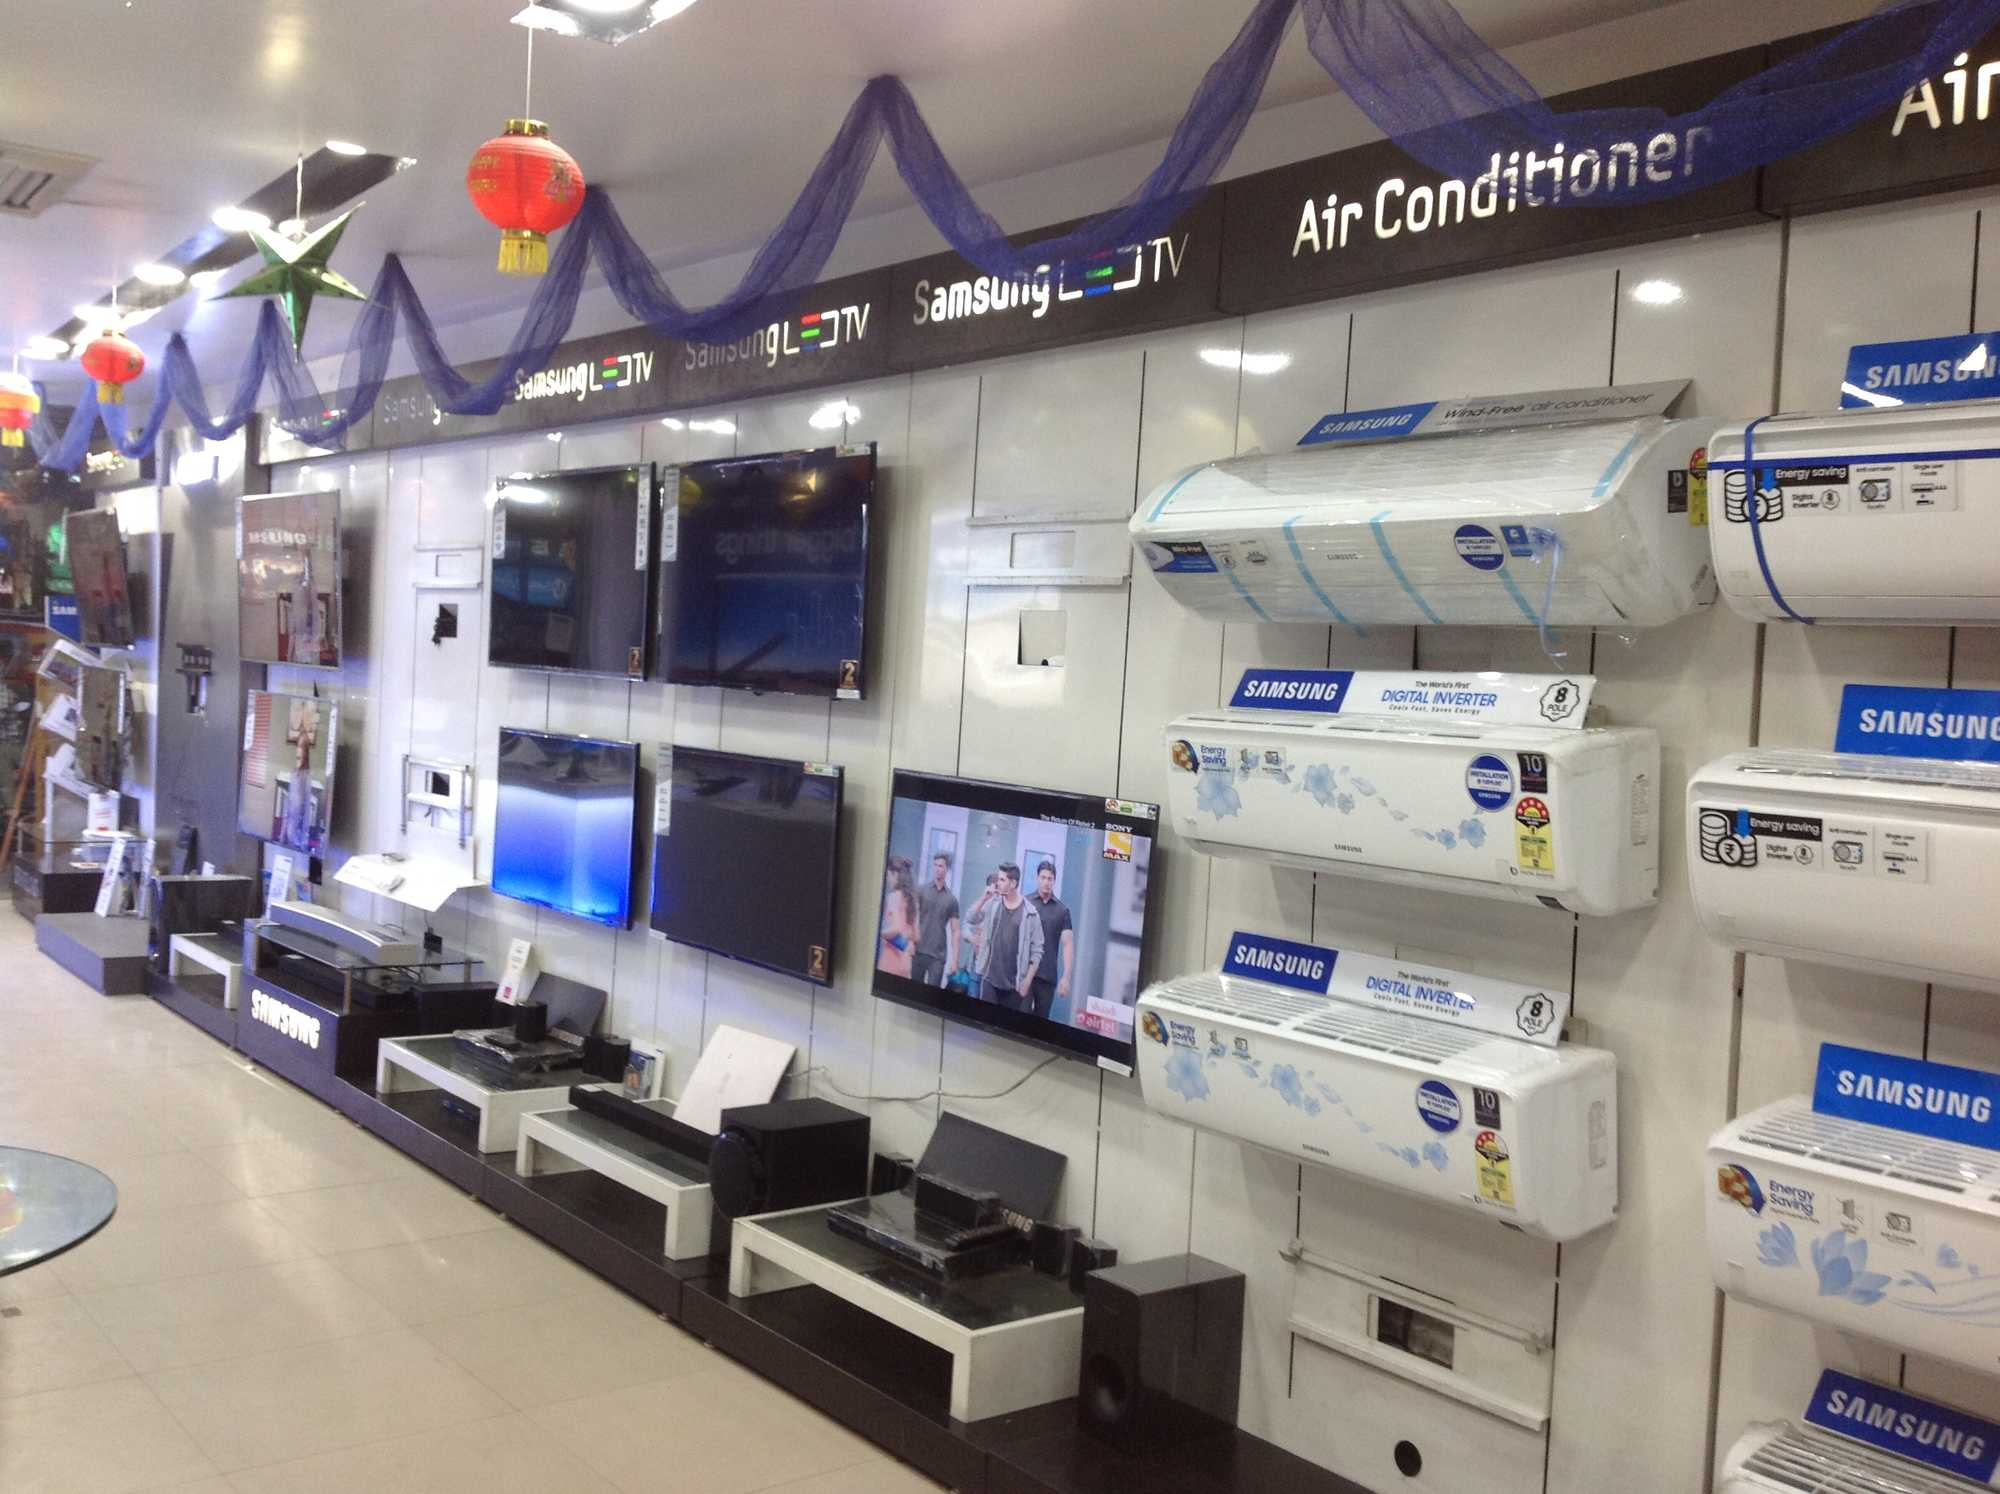 Samsung Refrigerator Dealers - Samsung Fridge in Connaught Place